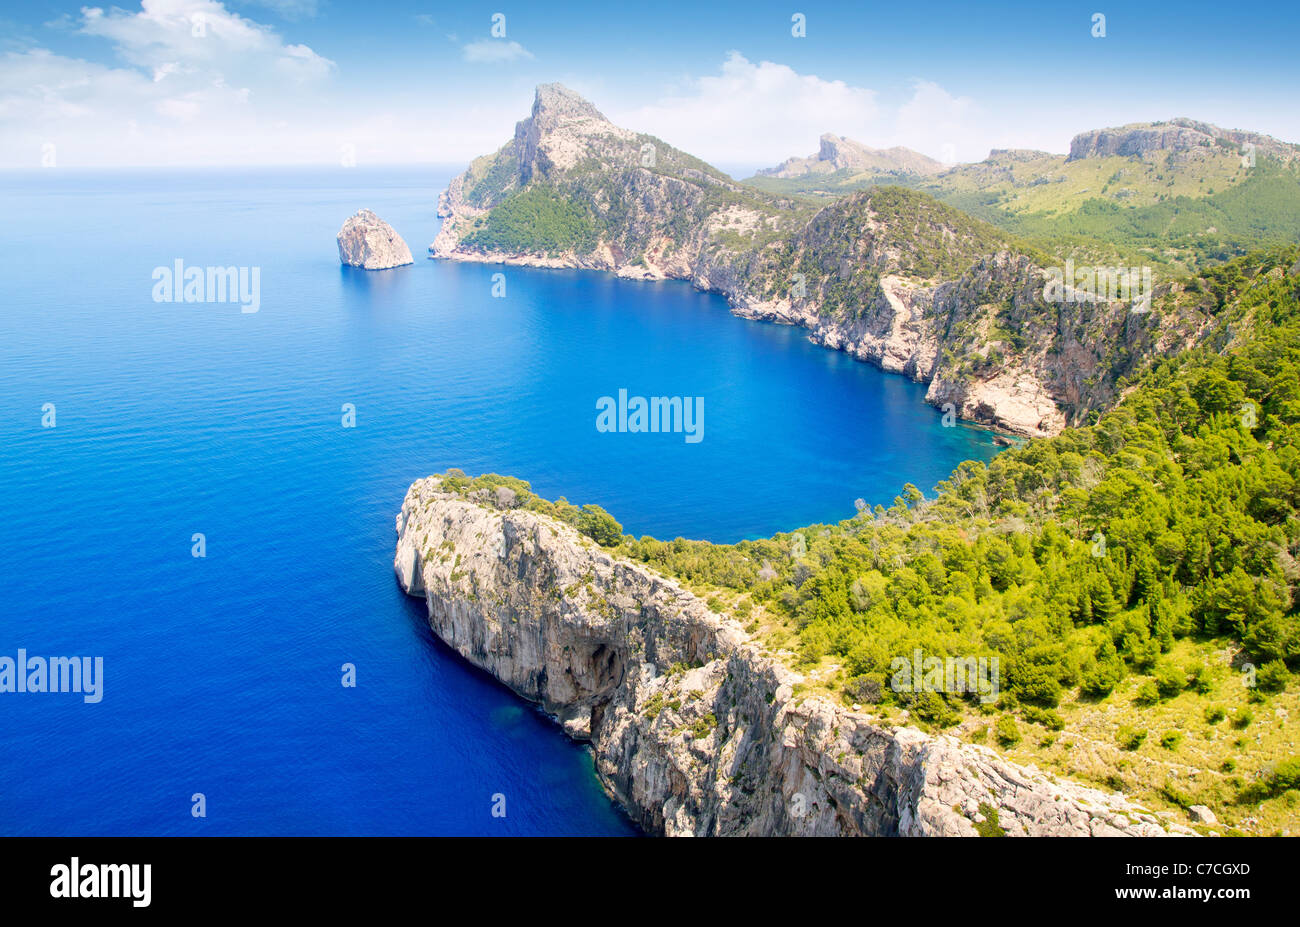 Formentor cape to Pollensa high aerial sea view in Mallorca balearic islands Stock Photo